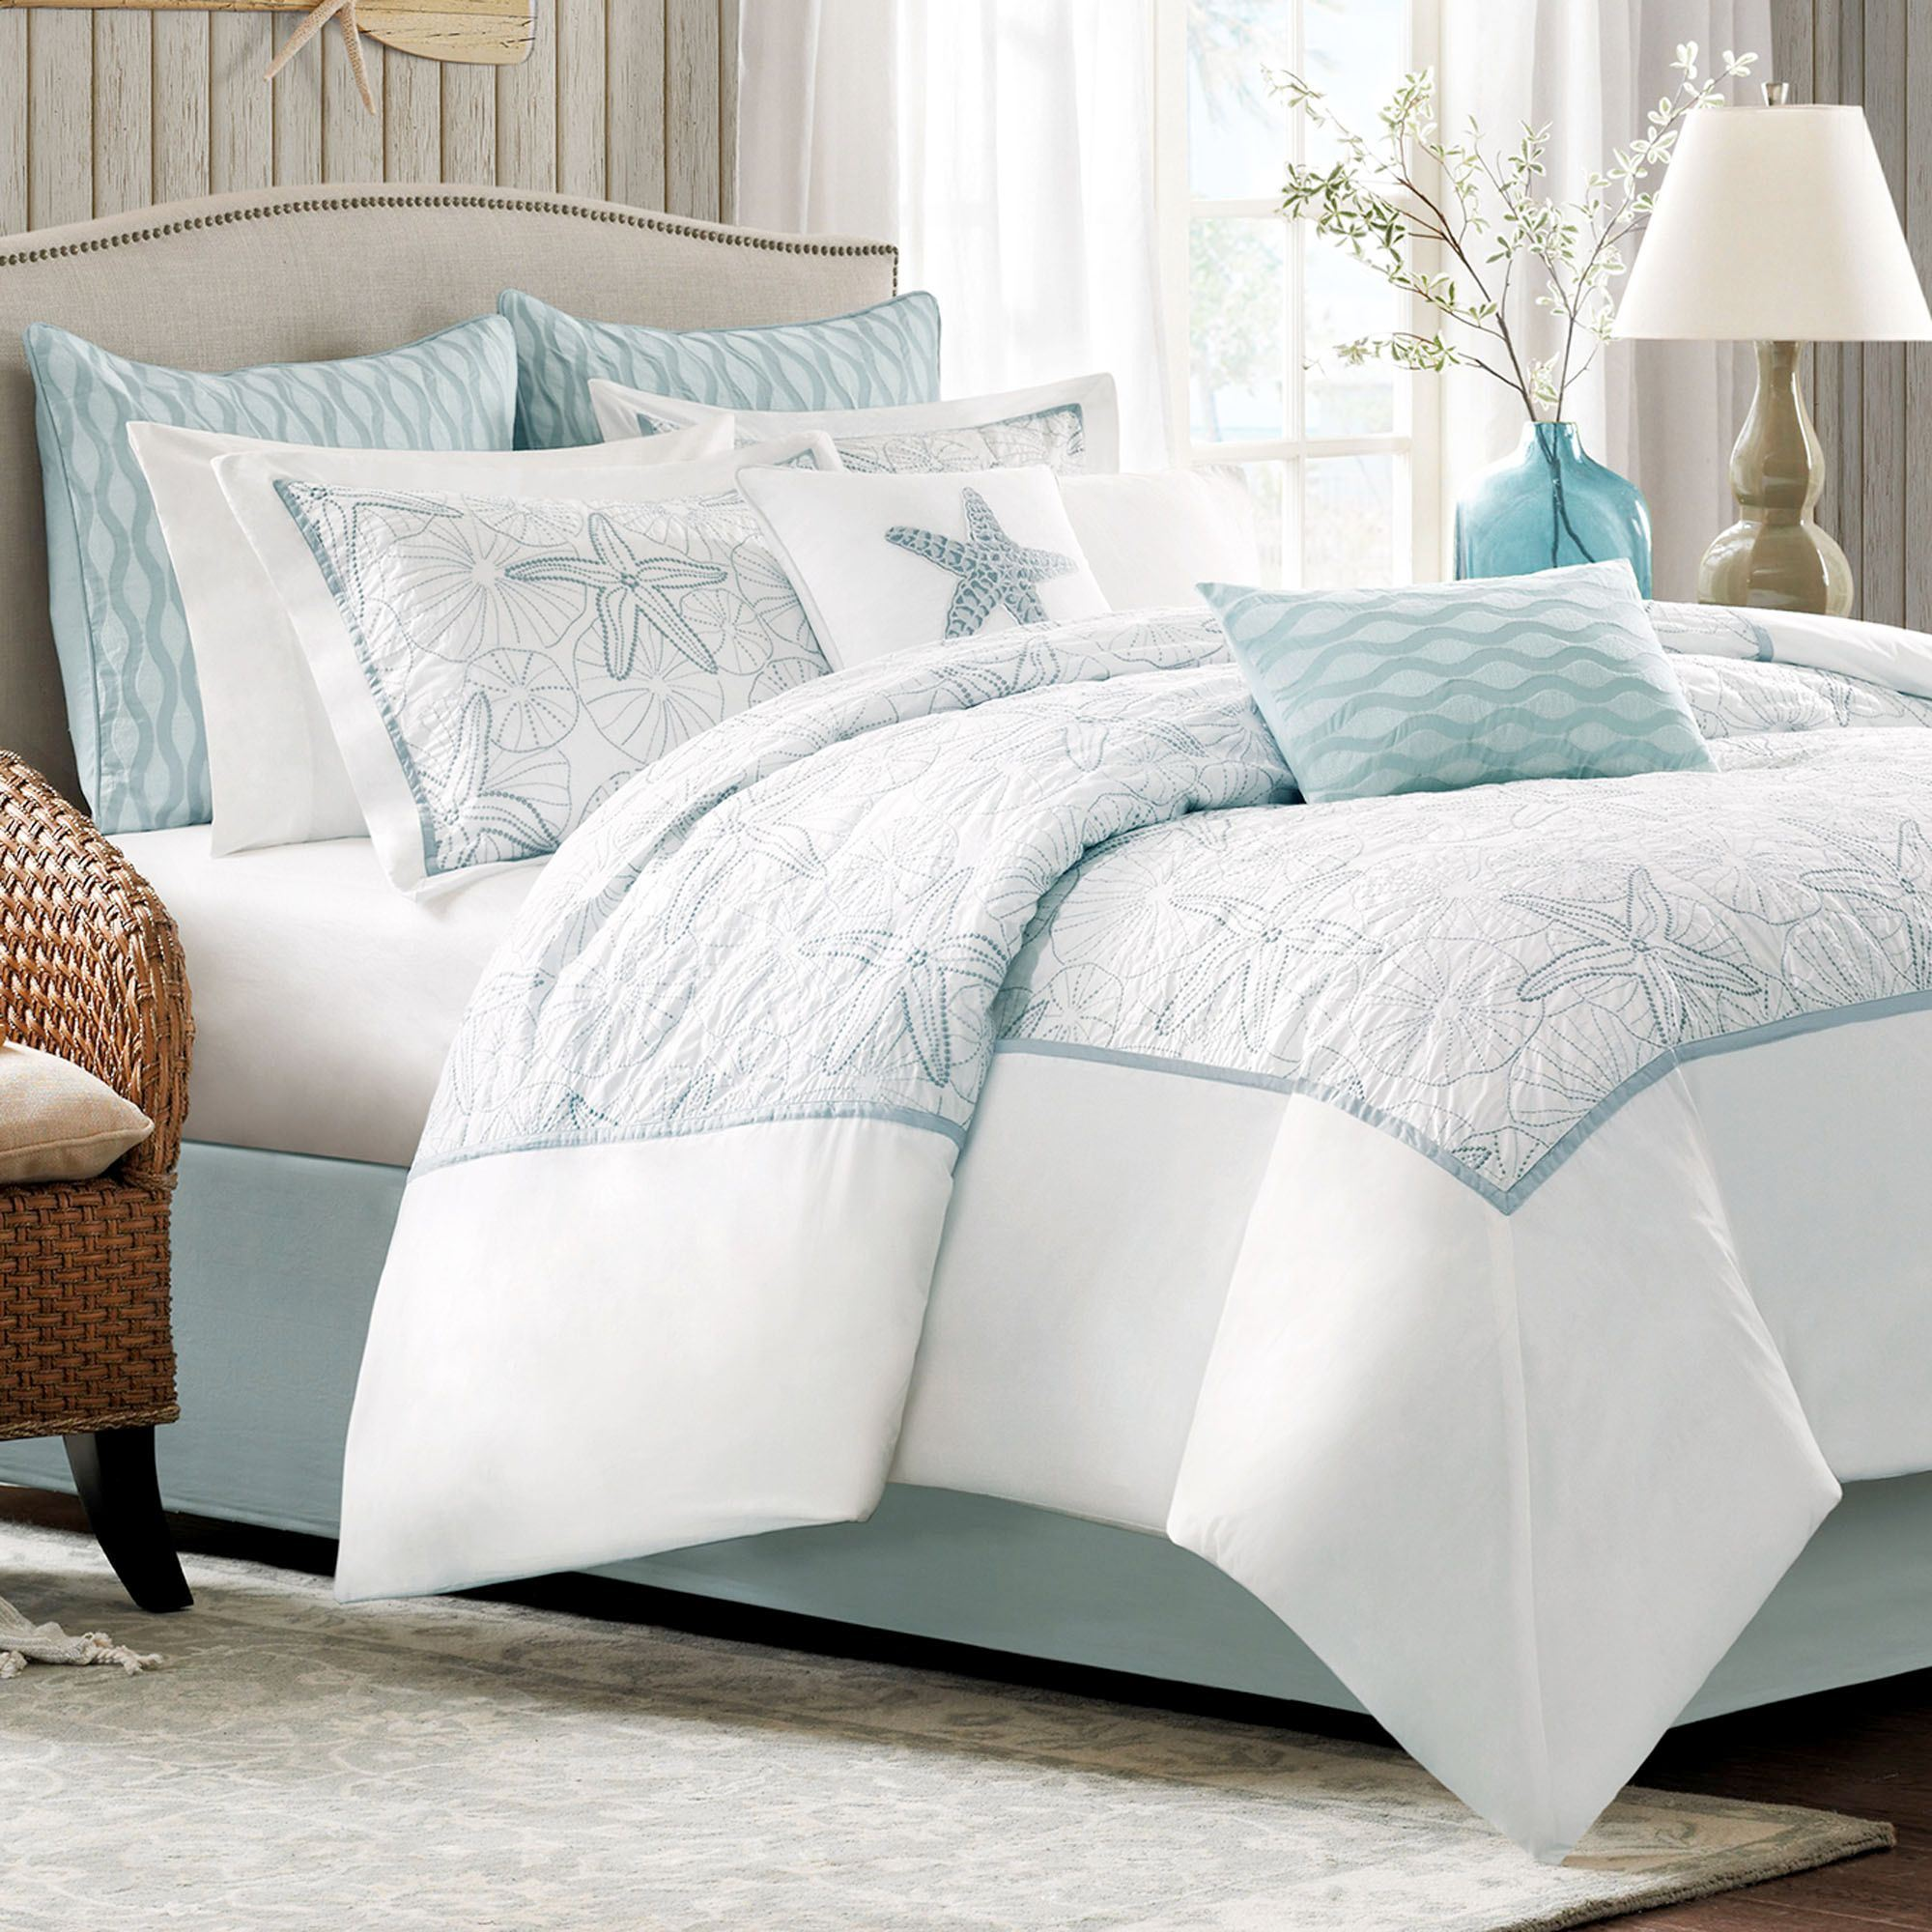 Bedding Decor: Maya Bay Embroidered Coastal Comforter Bedding